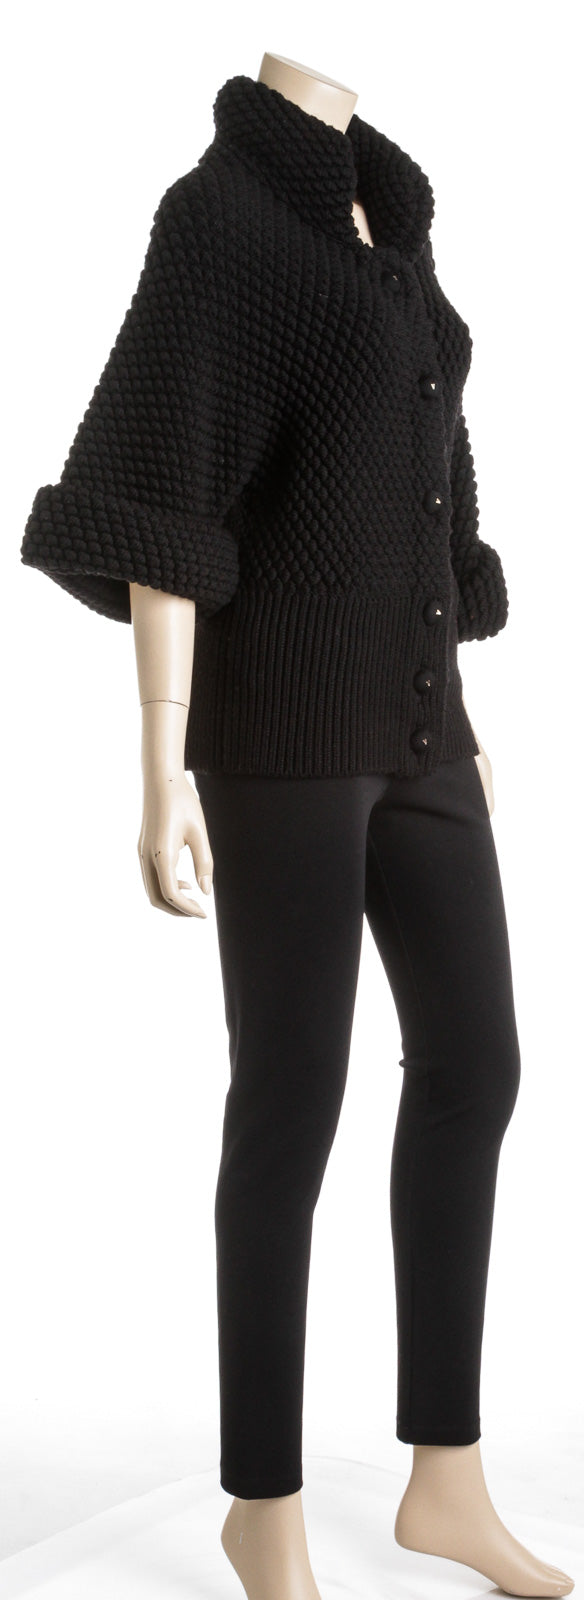 Valentino Black Wool Chunky Knit Sweater (Size S)